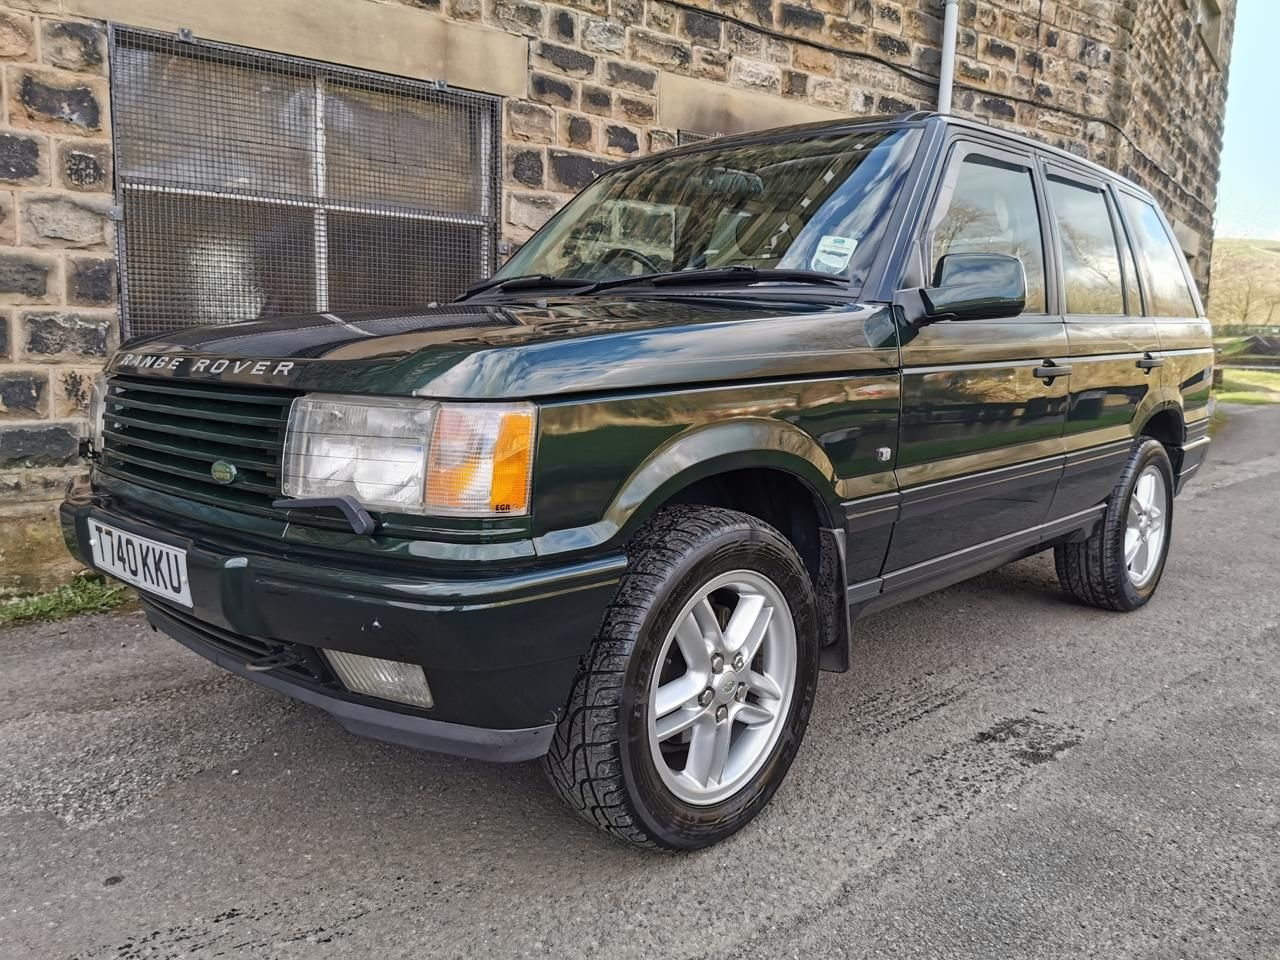 1999 Range Rover Vogue SE 1 of 30 cars, 1 Year Warranty For Sale (picture 4 of 6)